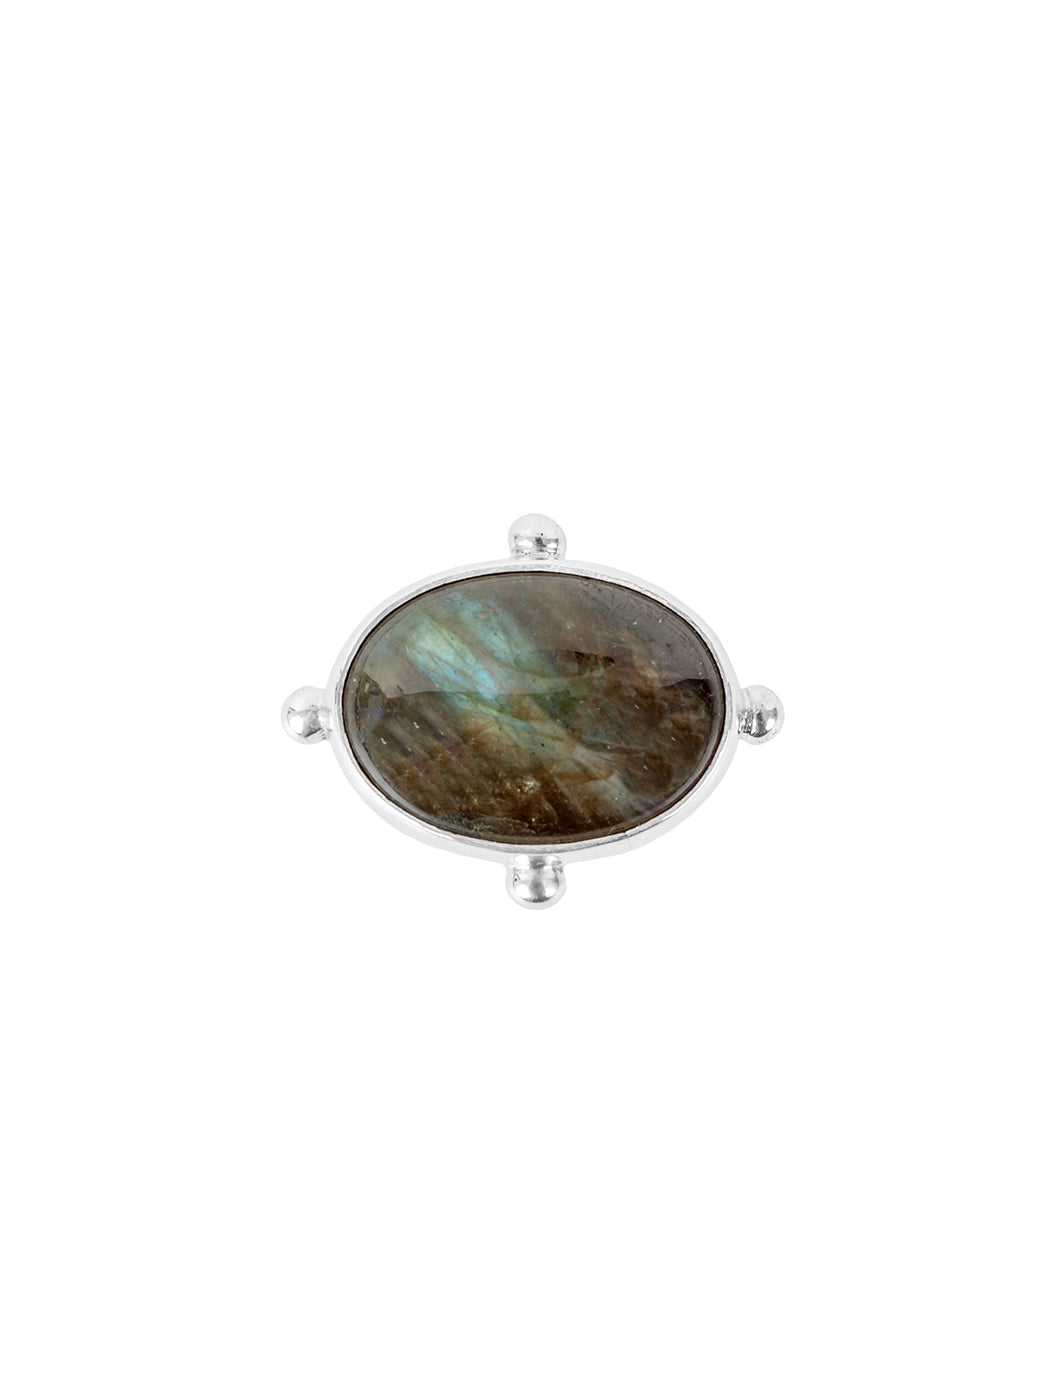 Fiorina Jewellery Large Oval Fishband Ring Labradorite